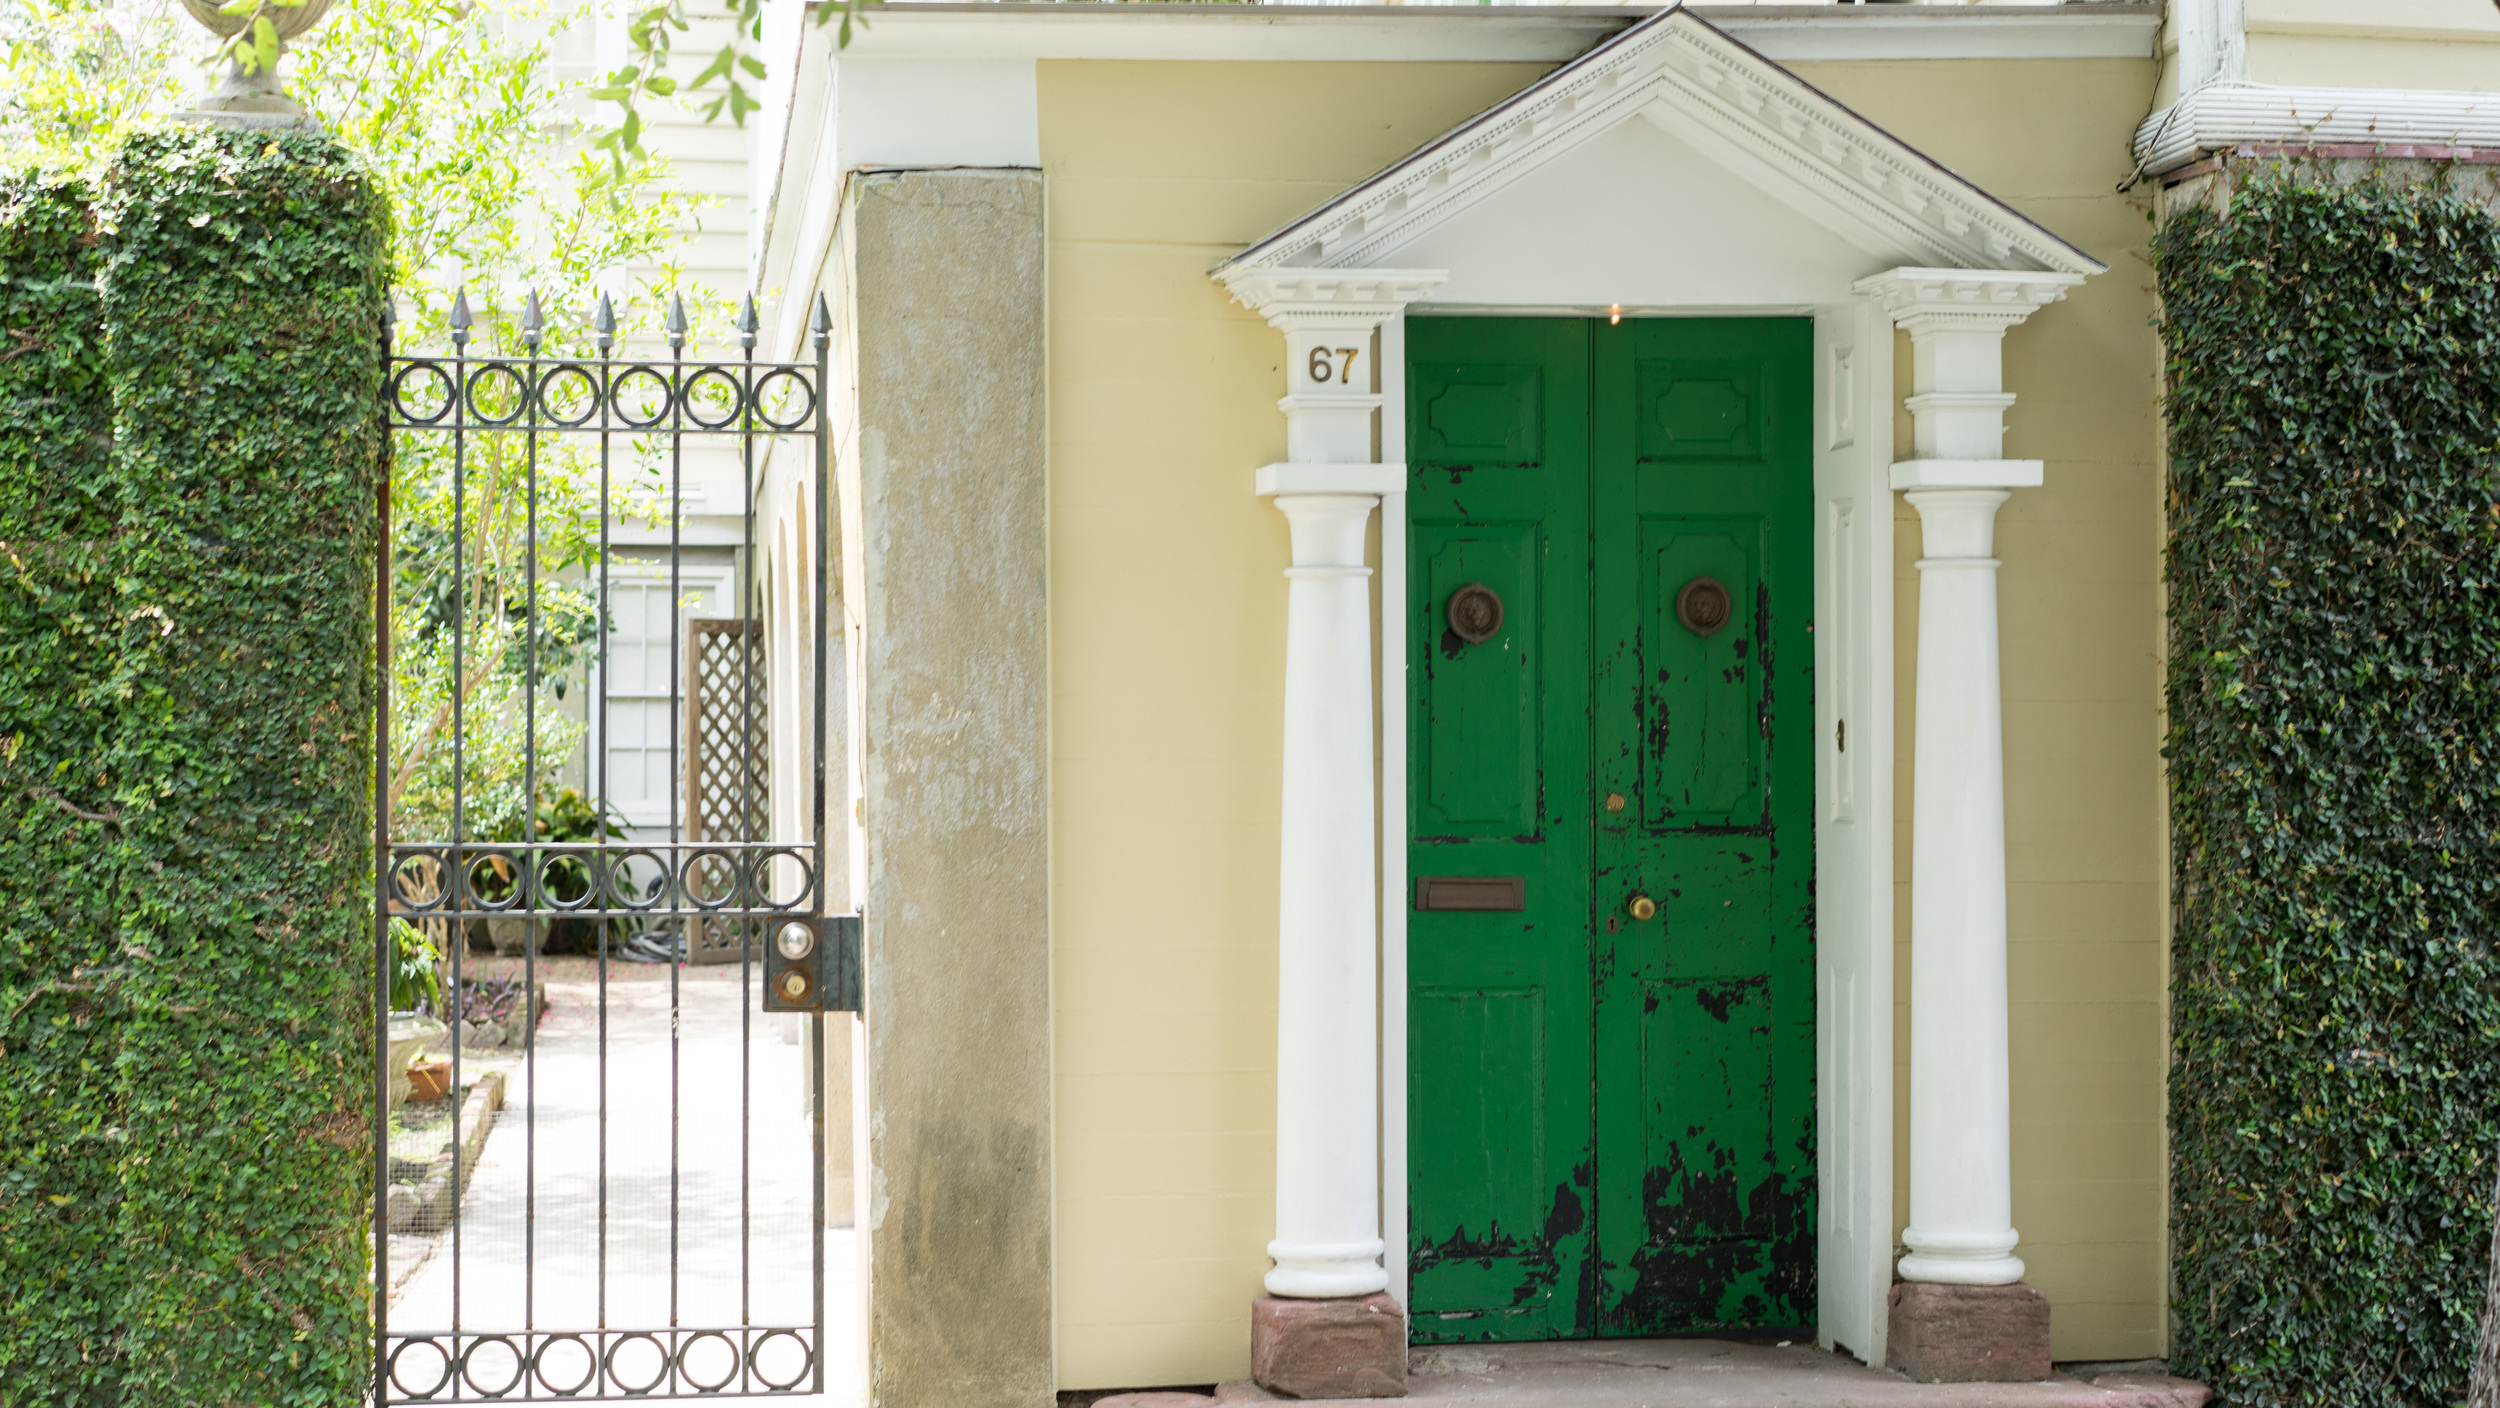 Also, how amazing is this bright green door? The front doors in Charleston never cease to amaze me.